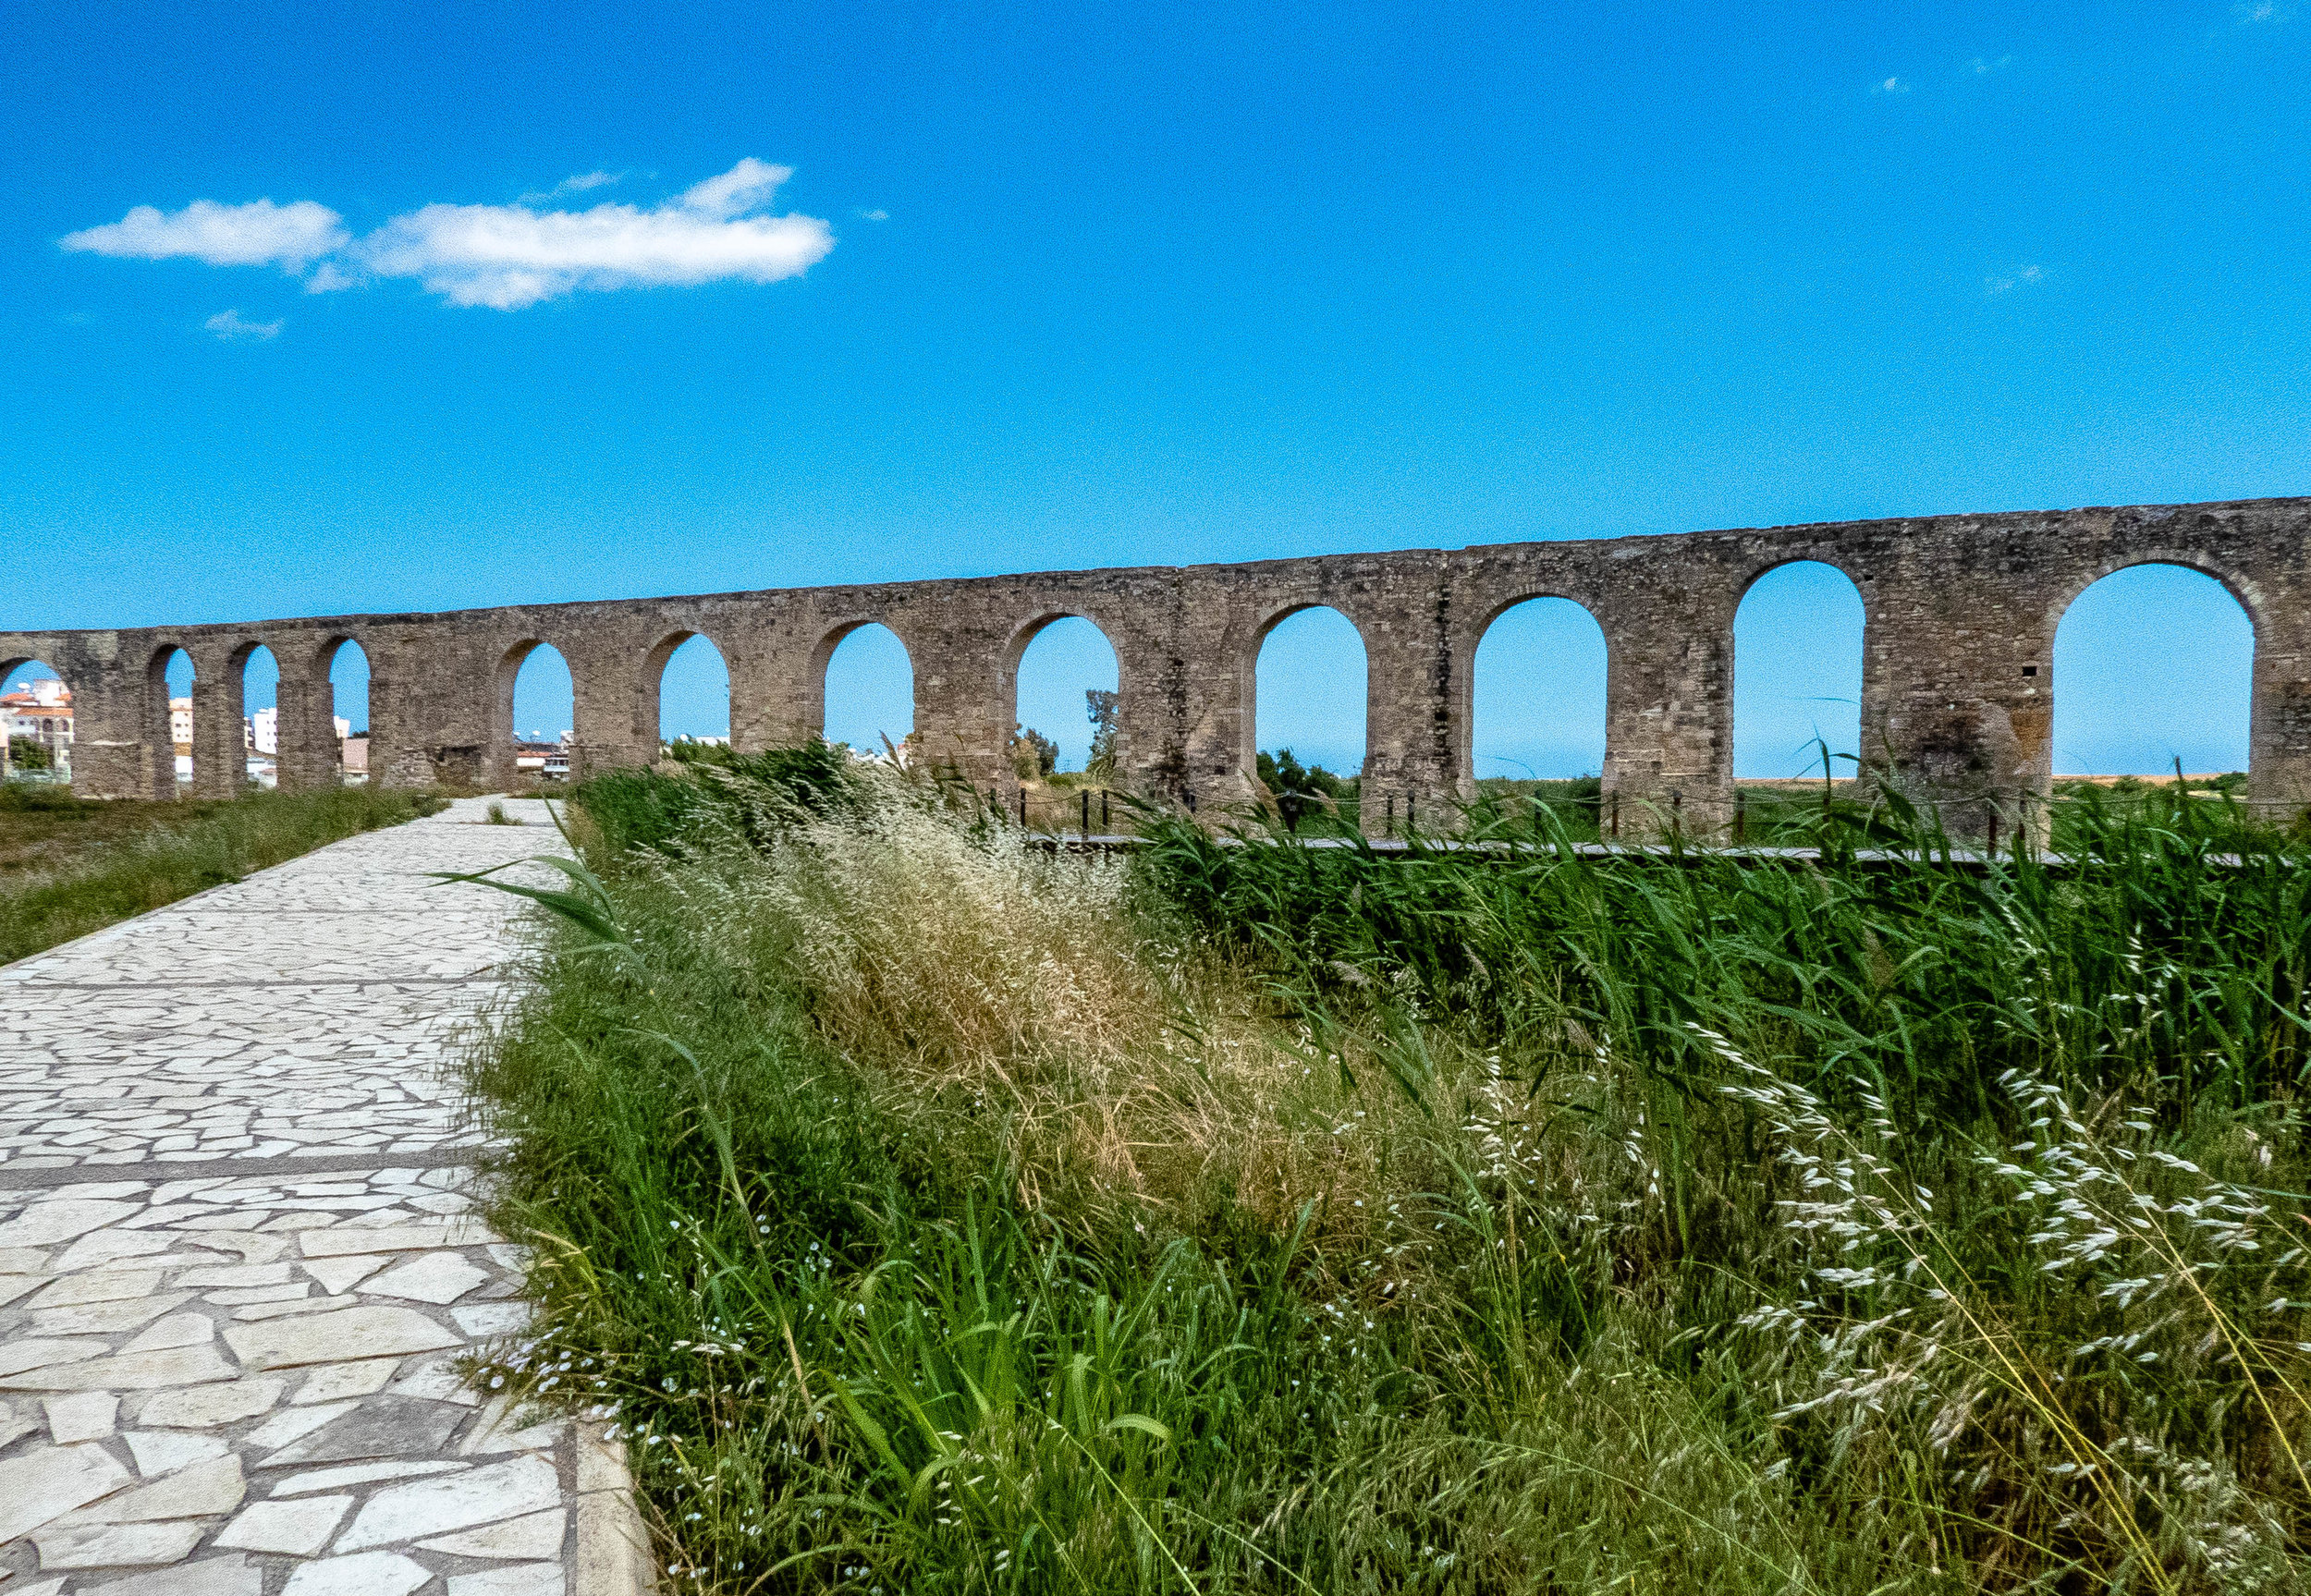 Heading towards Larnaca's Aqueduct